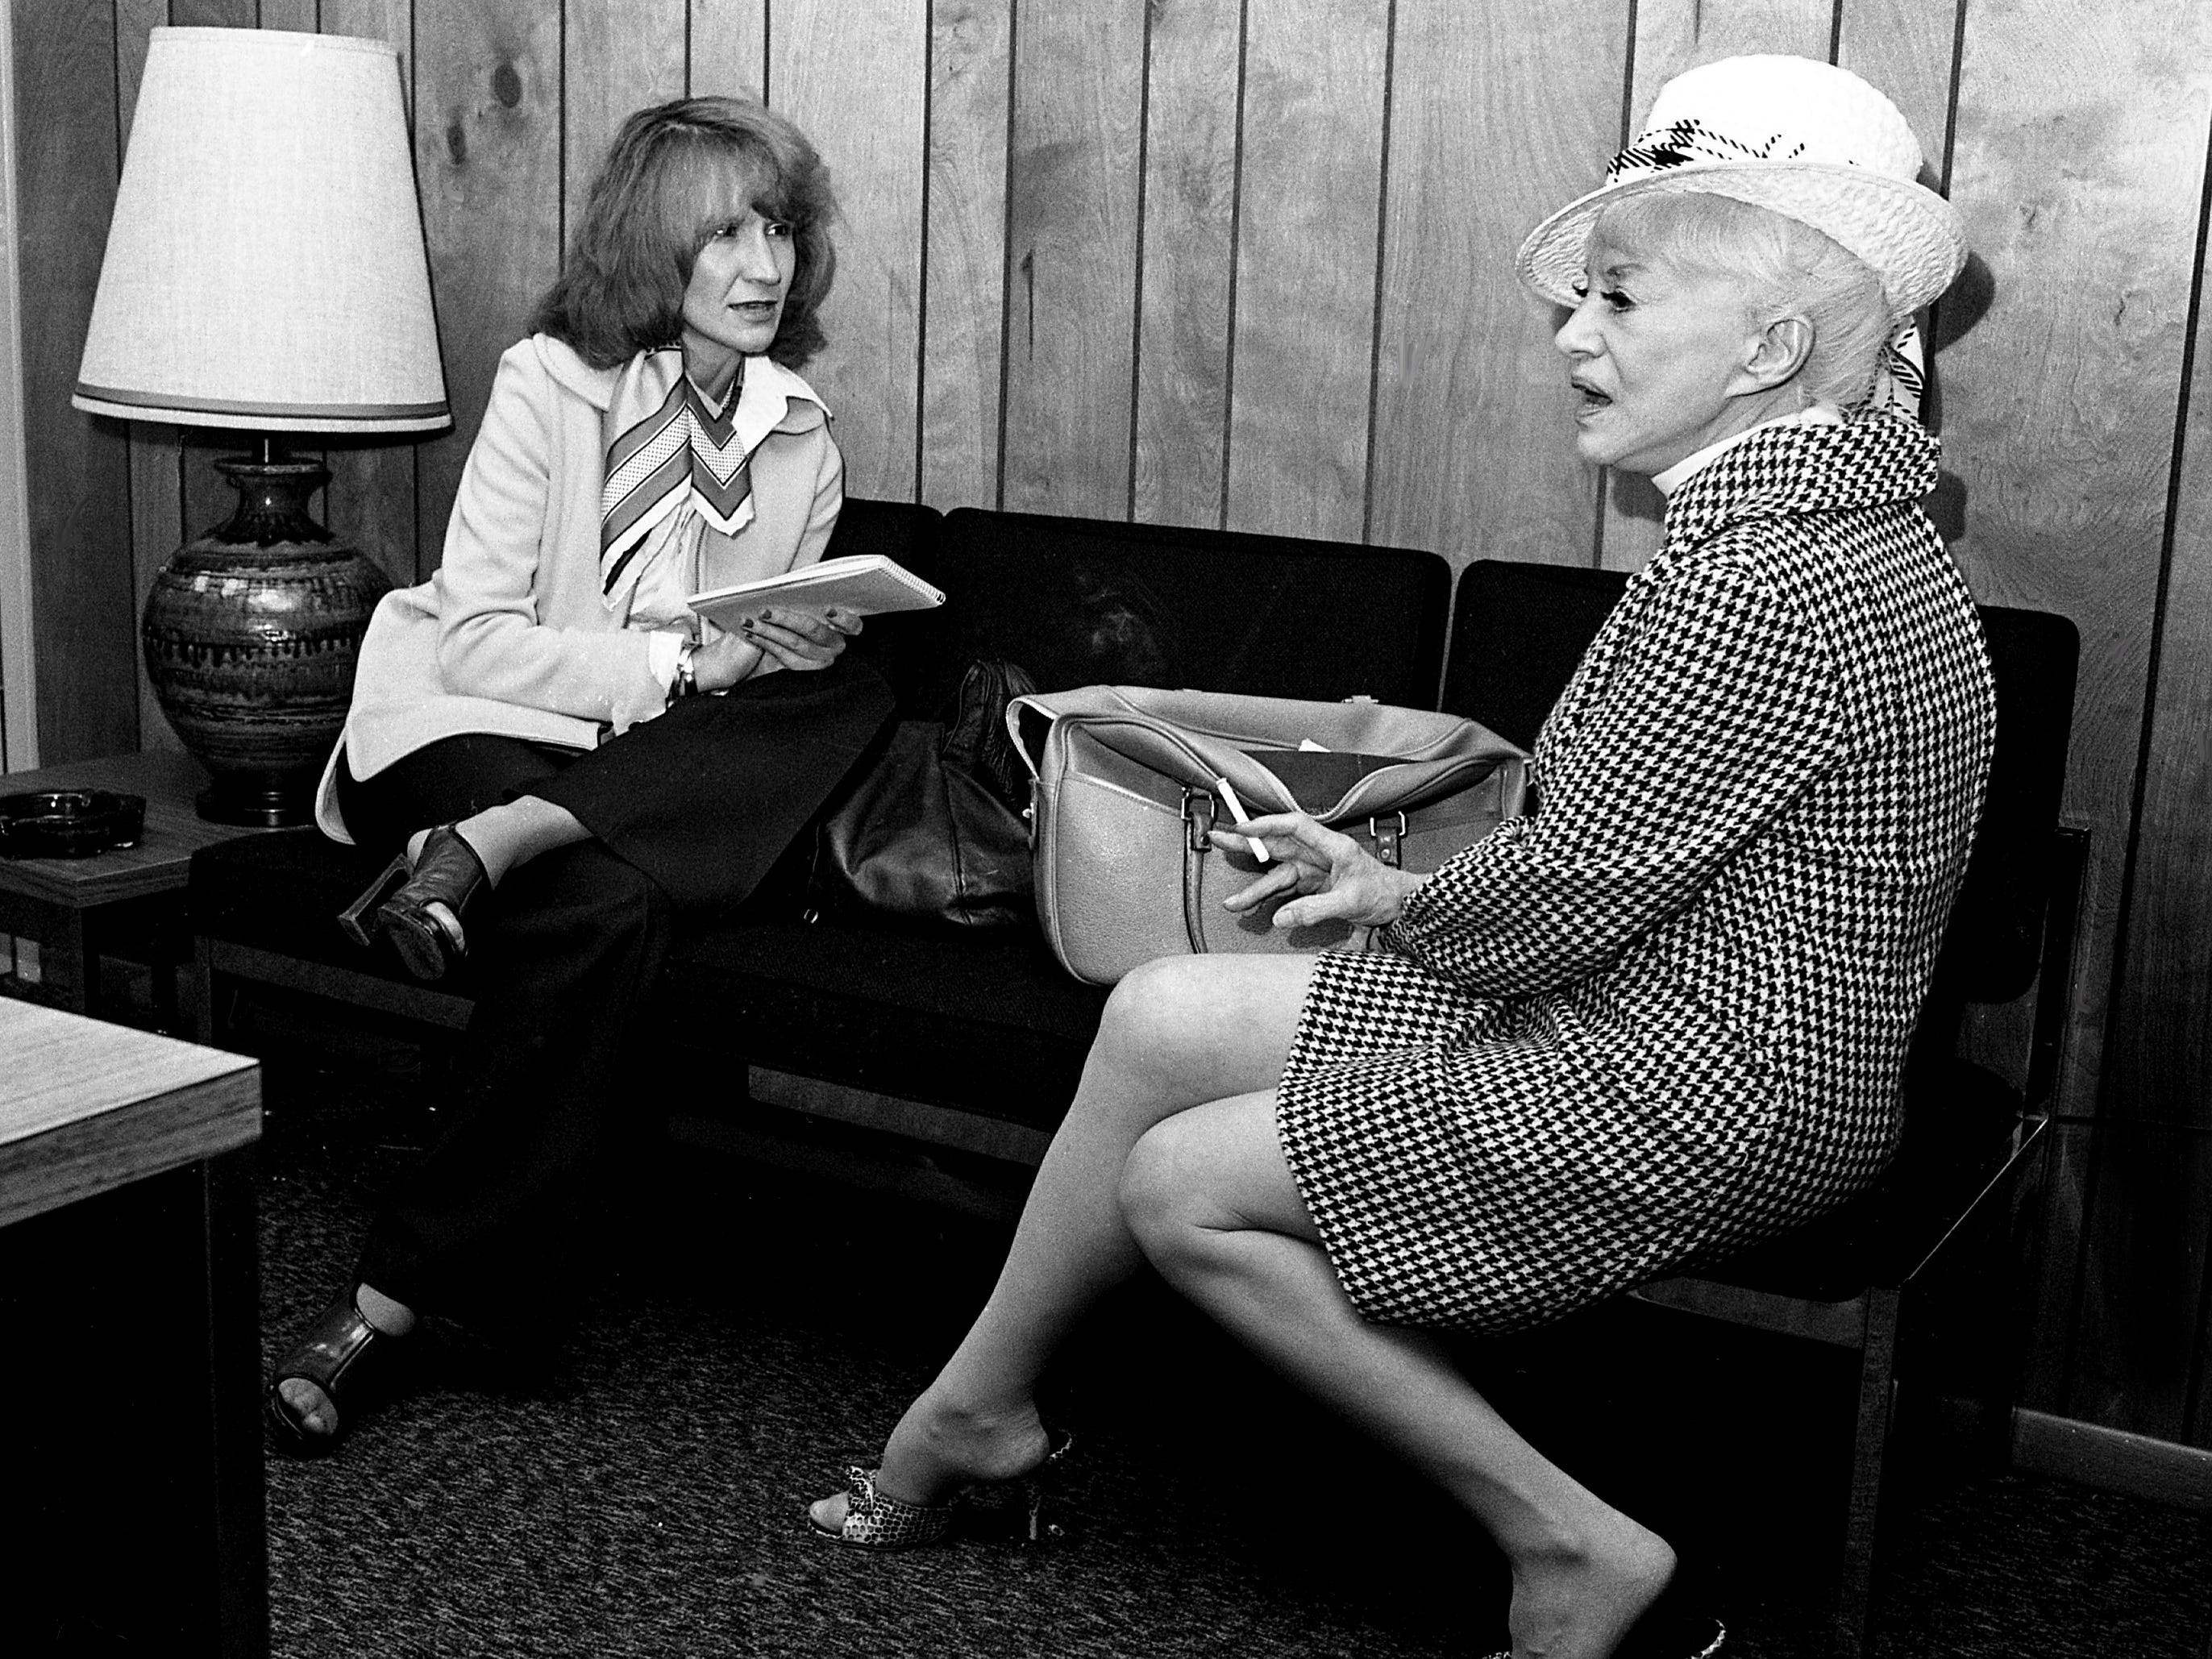 Tennessean reporter Jackie White, left, interviews famed burlesque dancer and actress Sally Rand at the Nashville Municipal Airport on May 1, 1975.